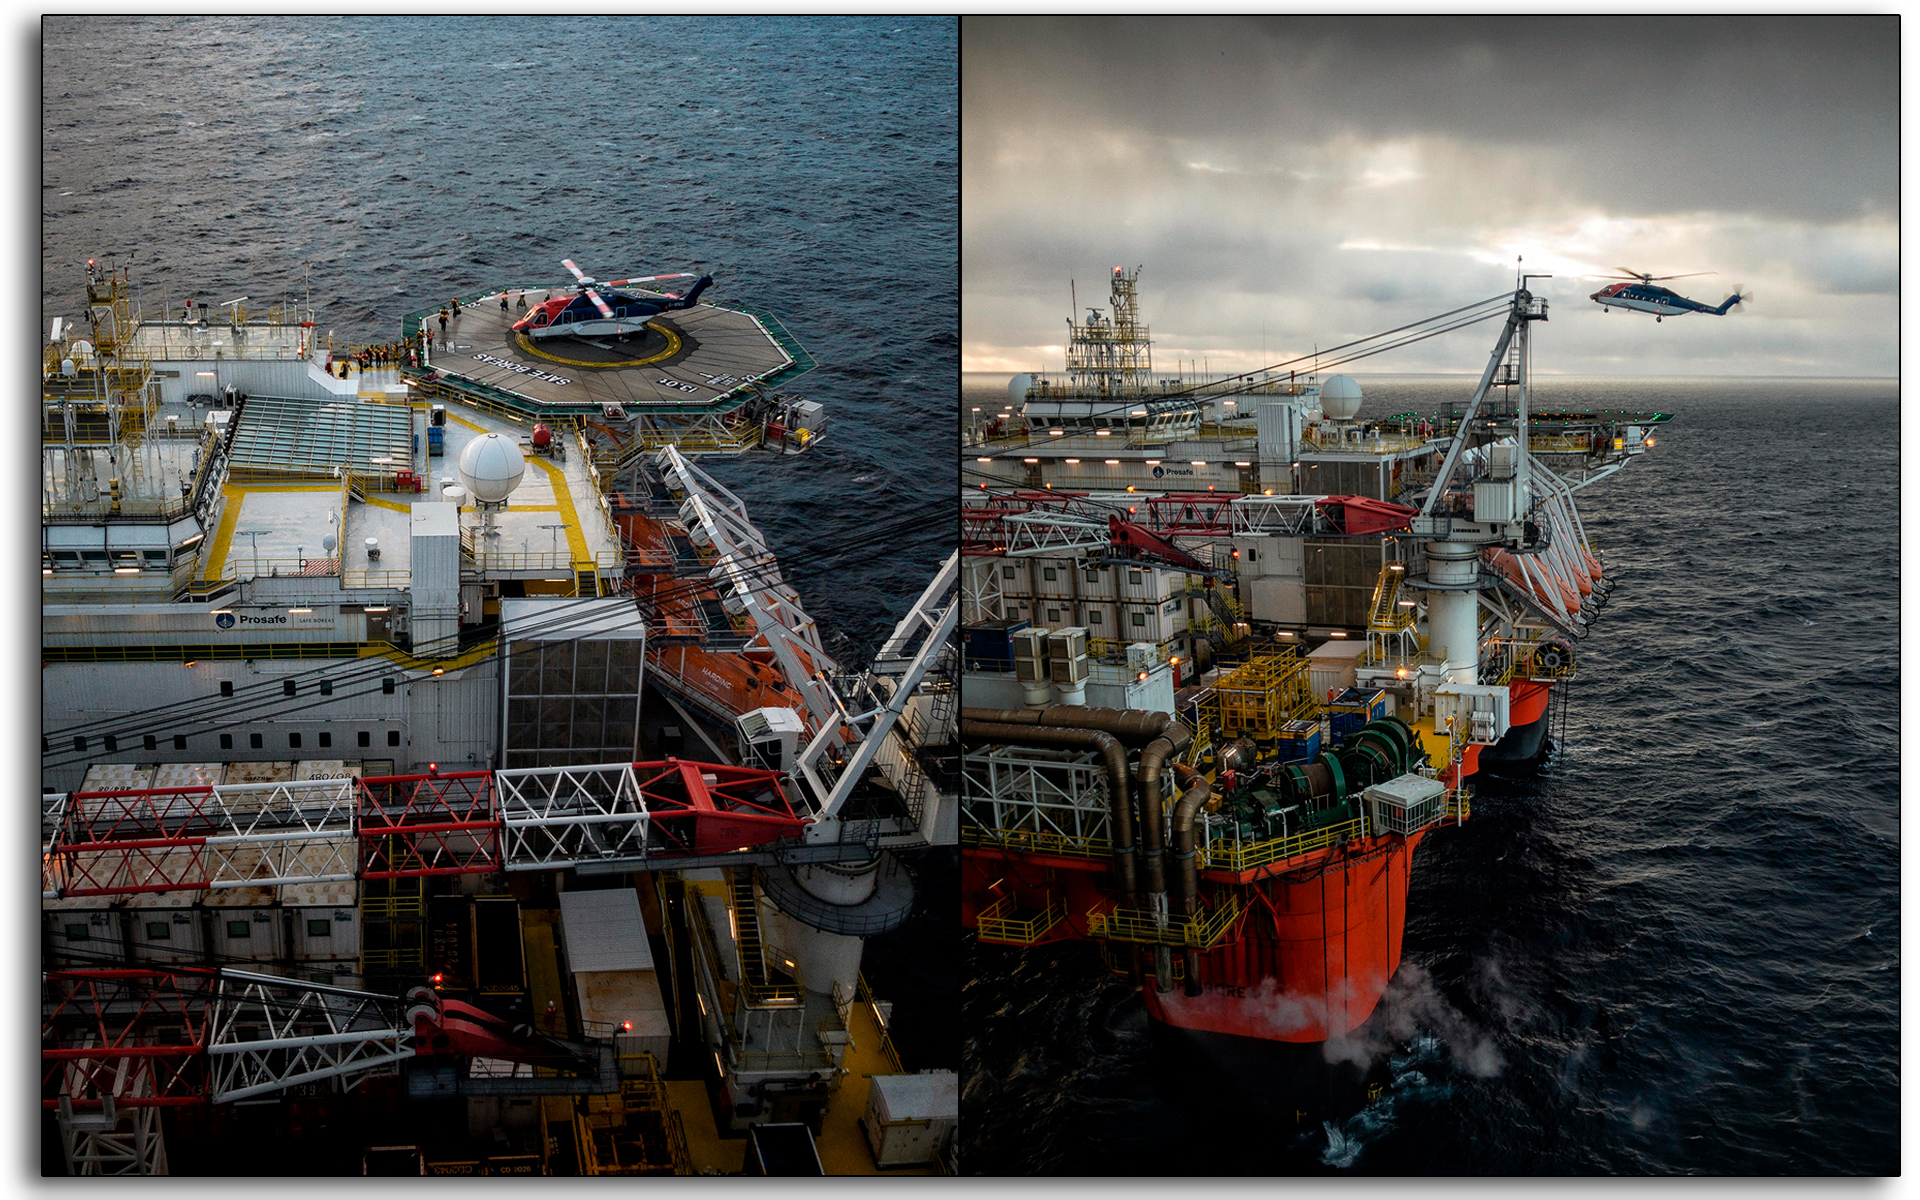 Helicopter, landing, Safe Boreas, Oil and gas, oil rig, Scotland, industry, industrial, Mariner, workers, construction.jpg